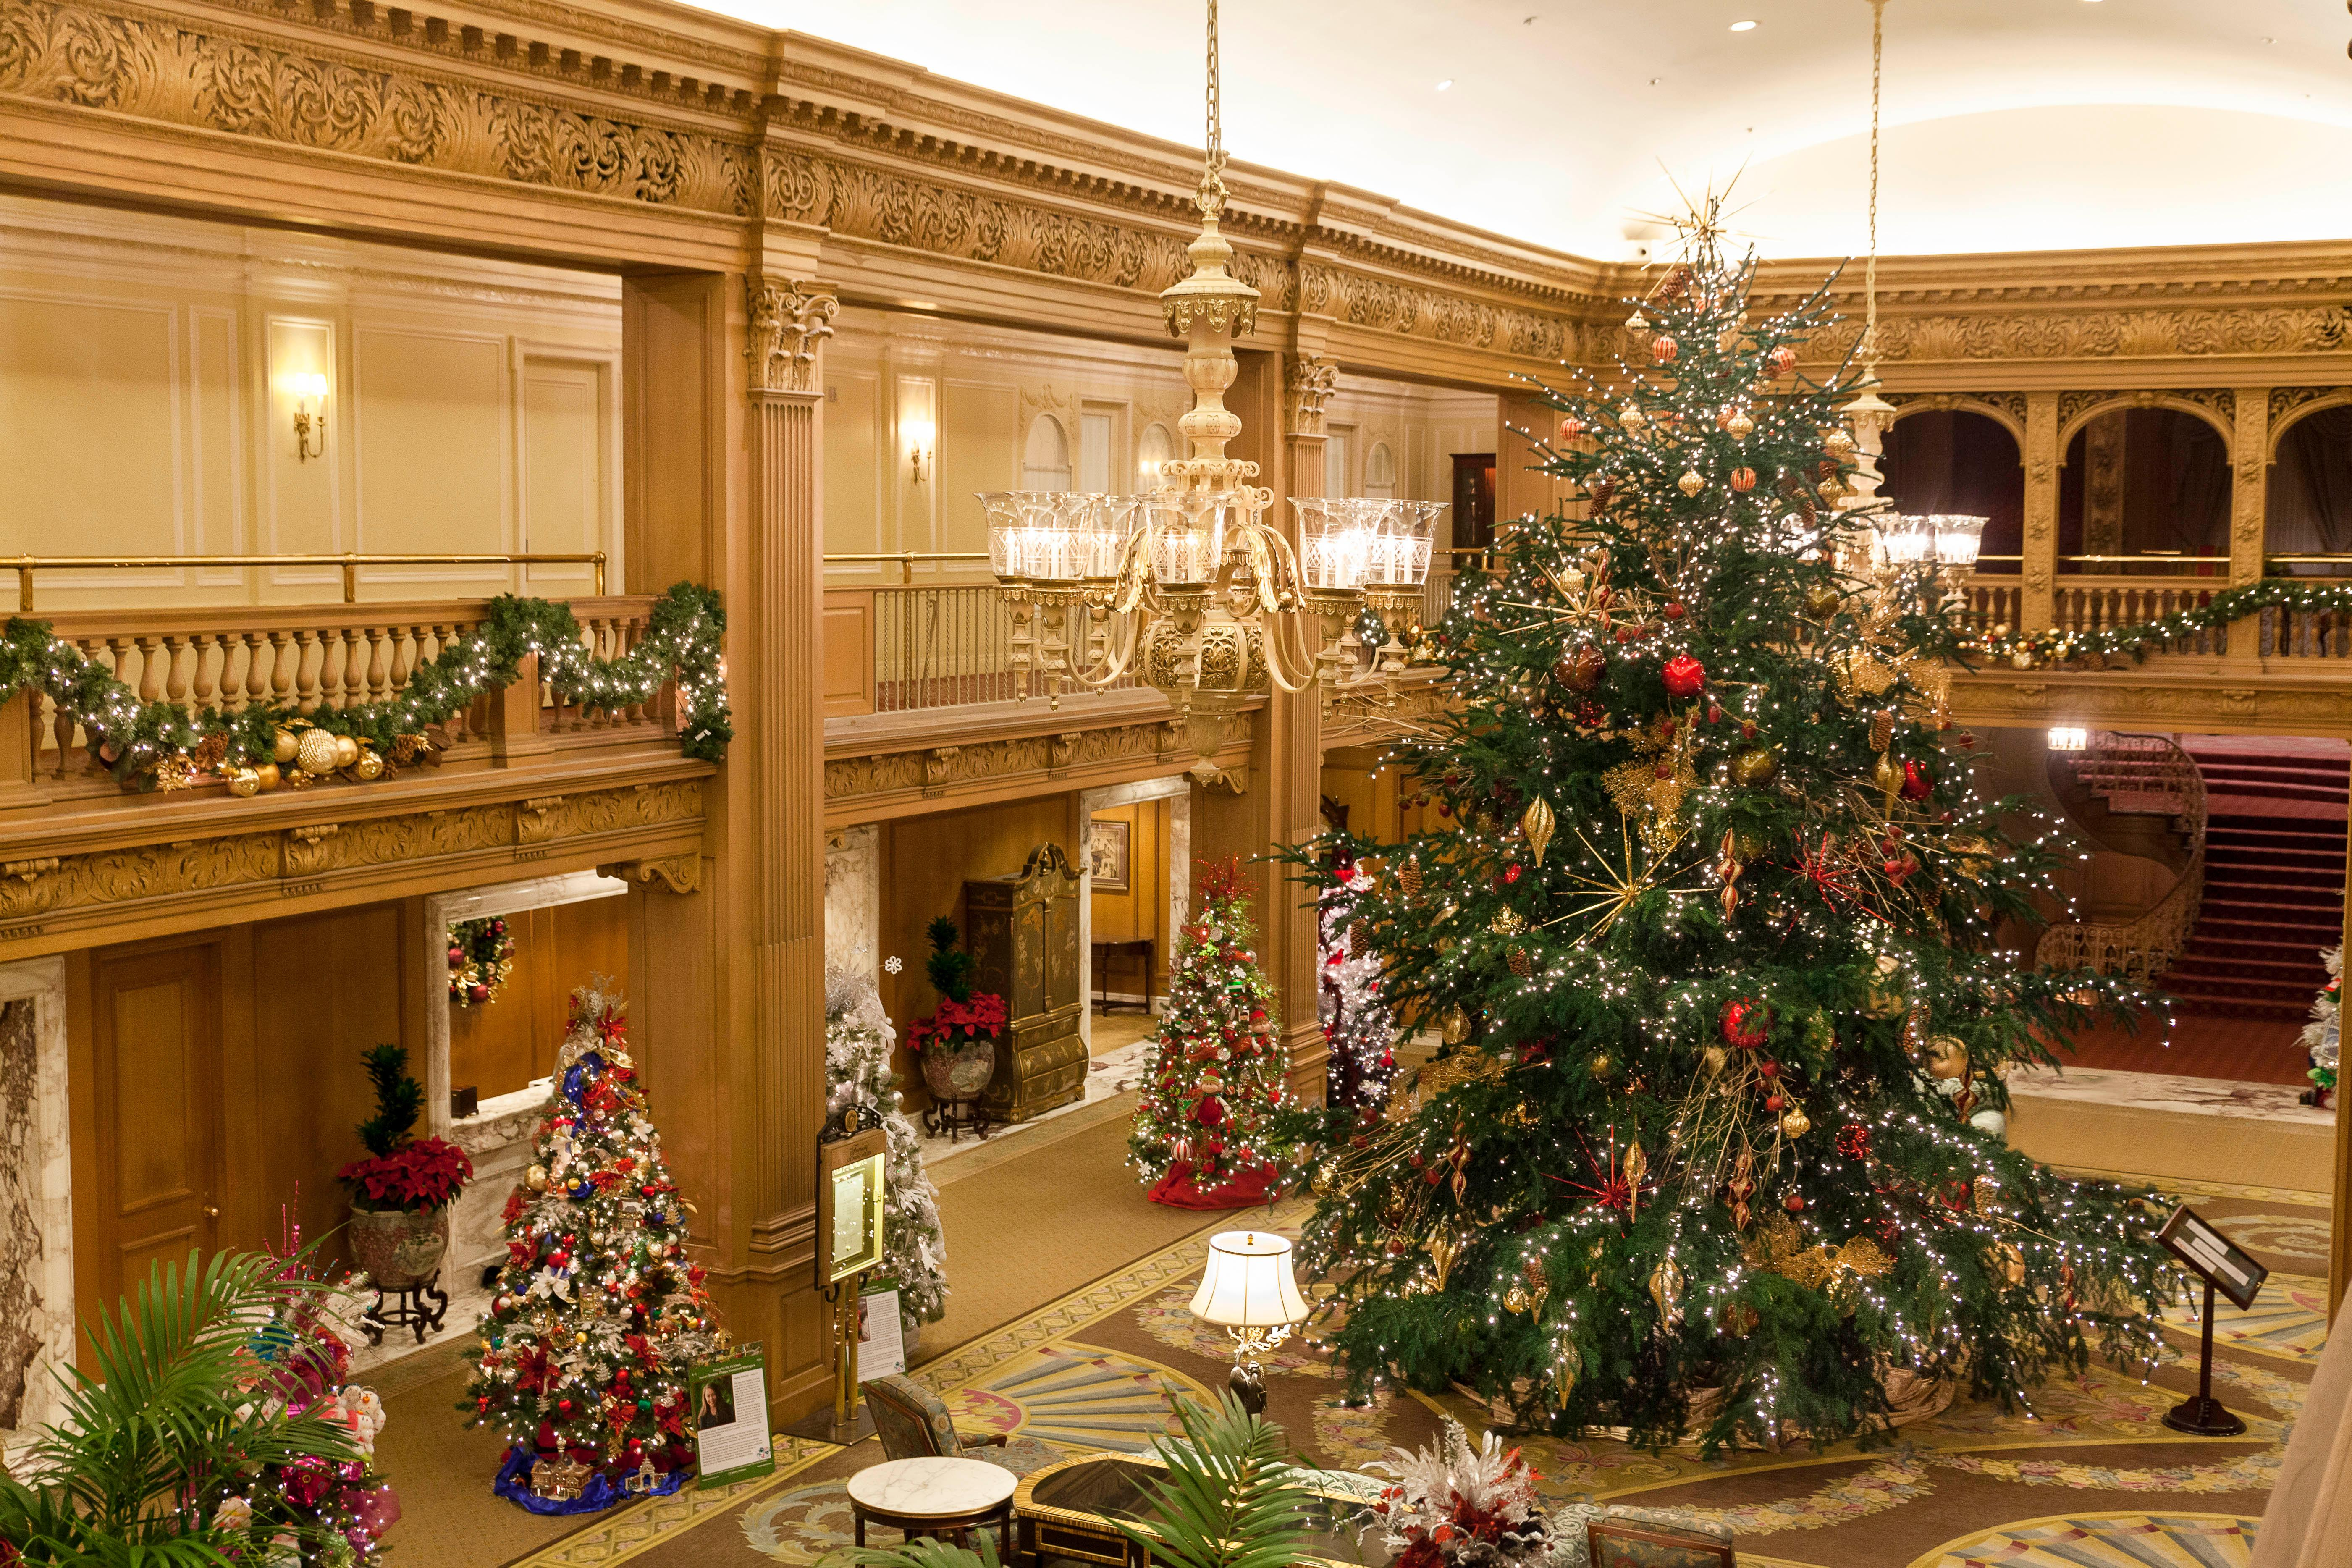 <p>Always a winner is a true holiday inspired staycation. Embrace the true spirit of the holidays with Trees of Hope at Fairmont Olympic Hotel . Lavishly decorated Christmas trees, sponsored by local businesses, will light up hotel lobbies with all event proceeds going to local charities. (Image: Fairmont)</p><p></p>